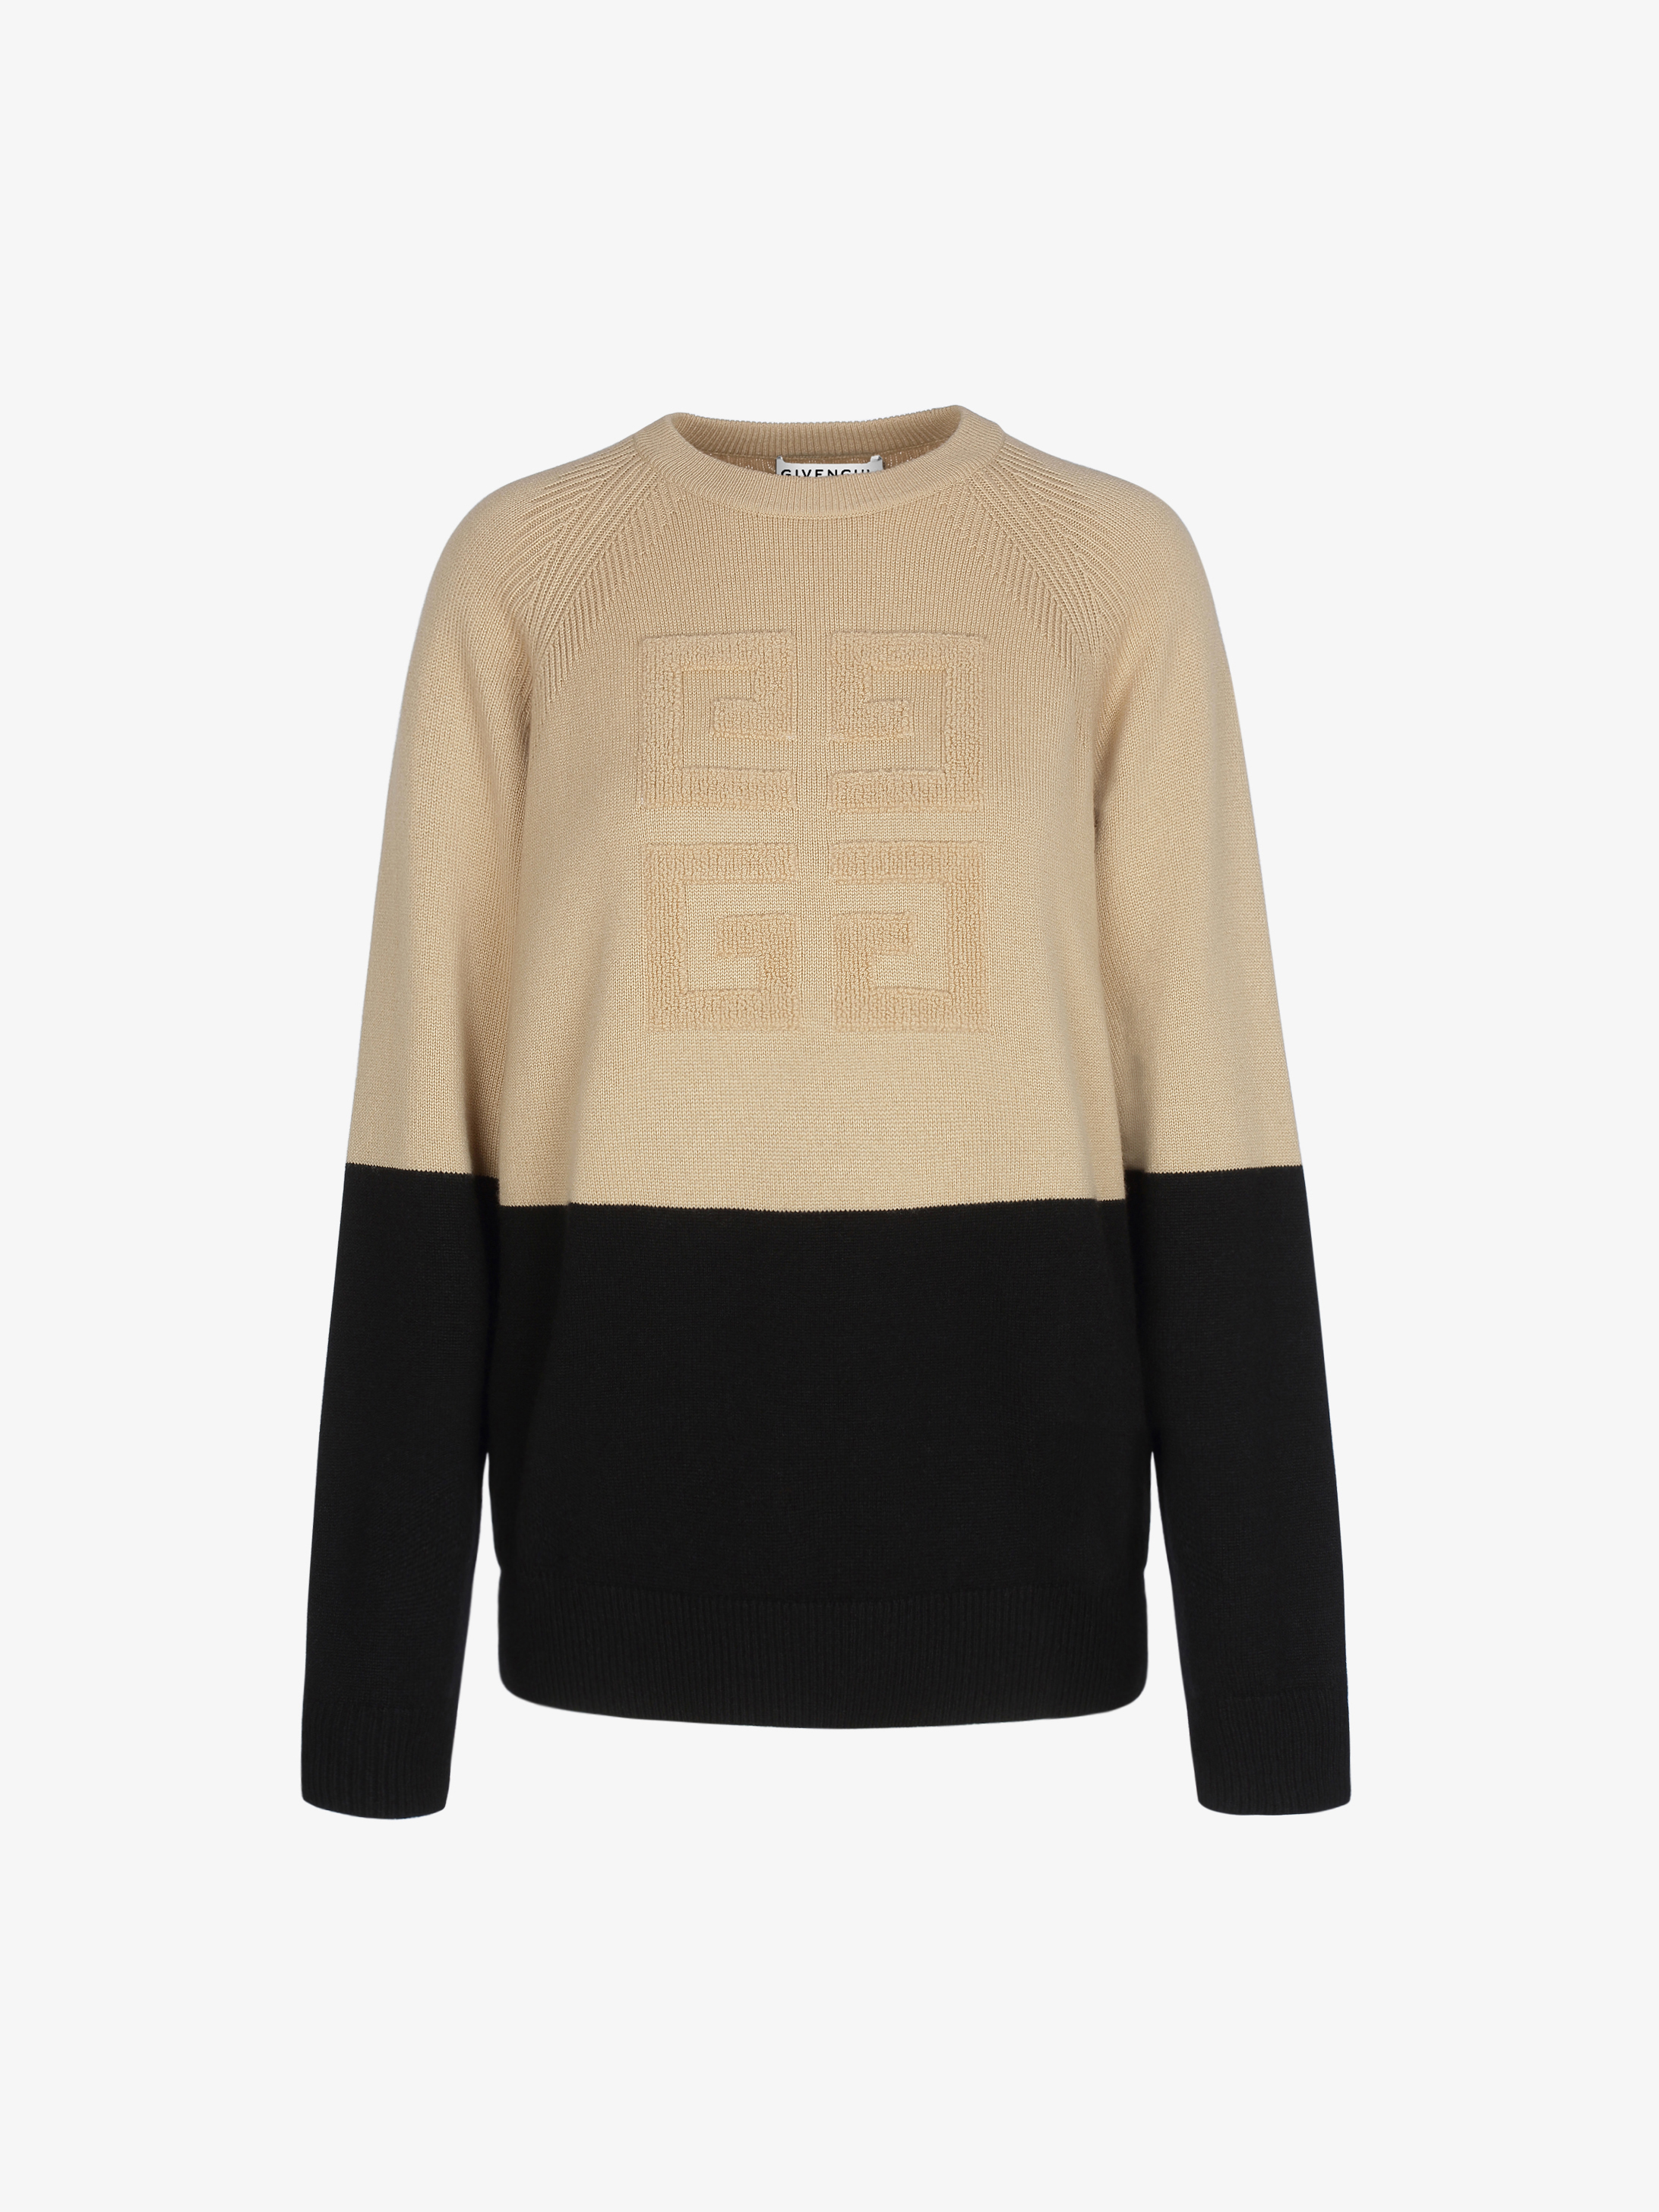 Two tone sweater in cashmere with 4G emblem